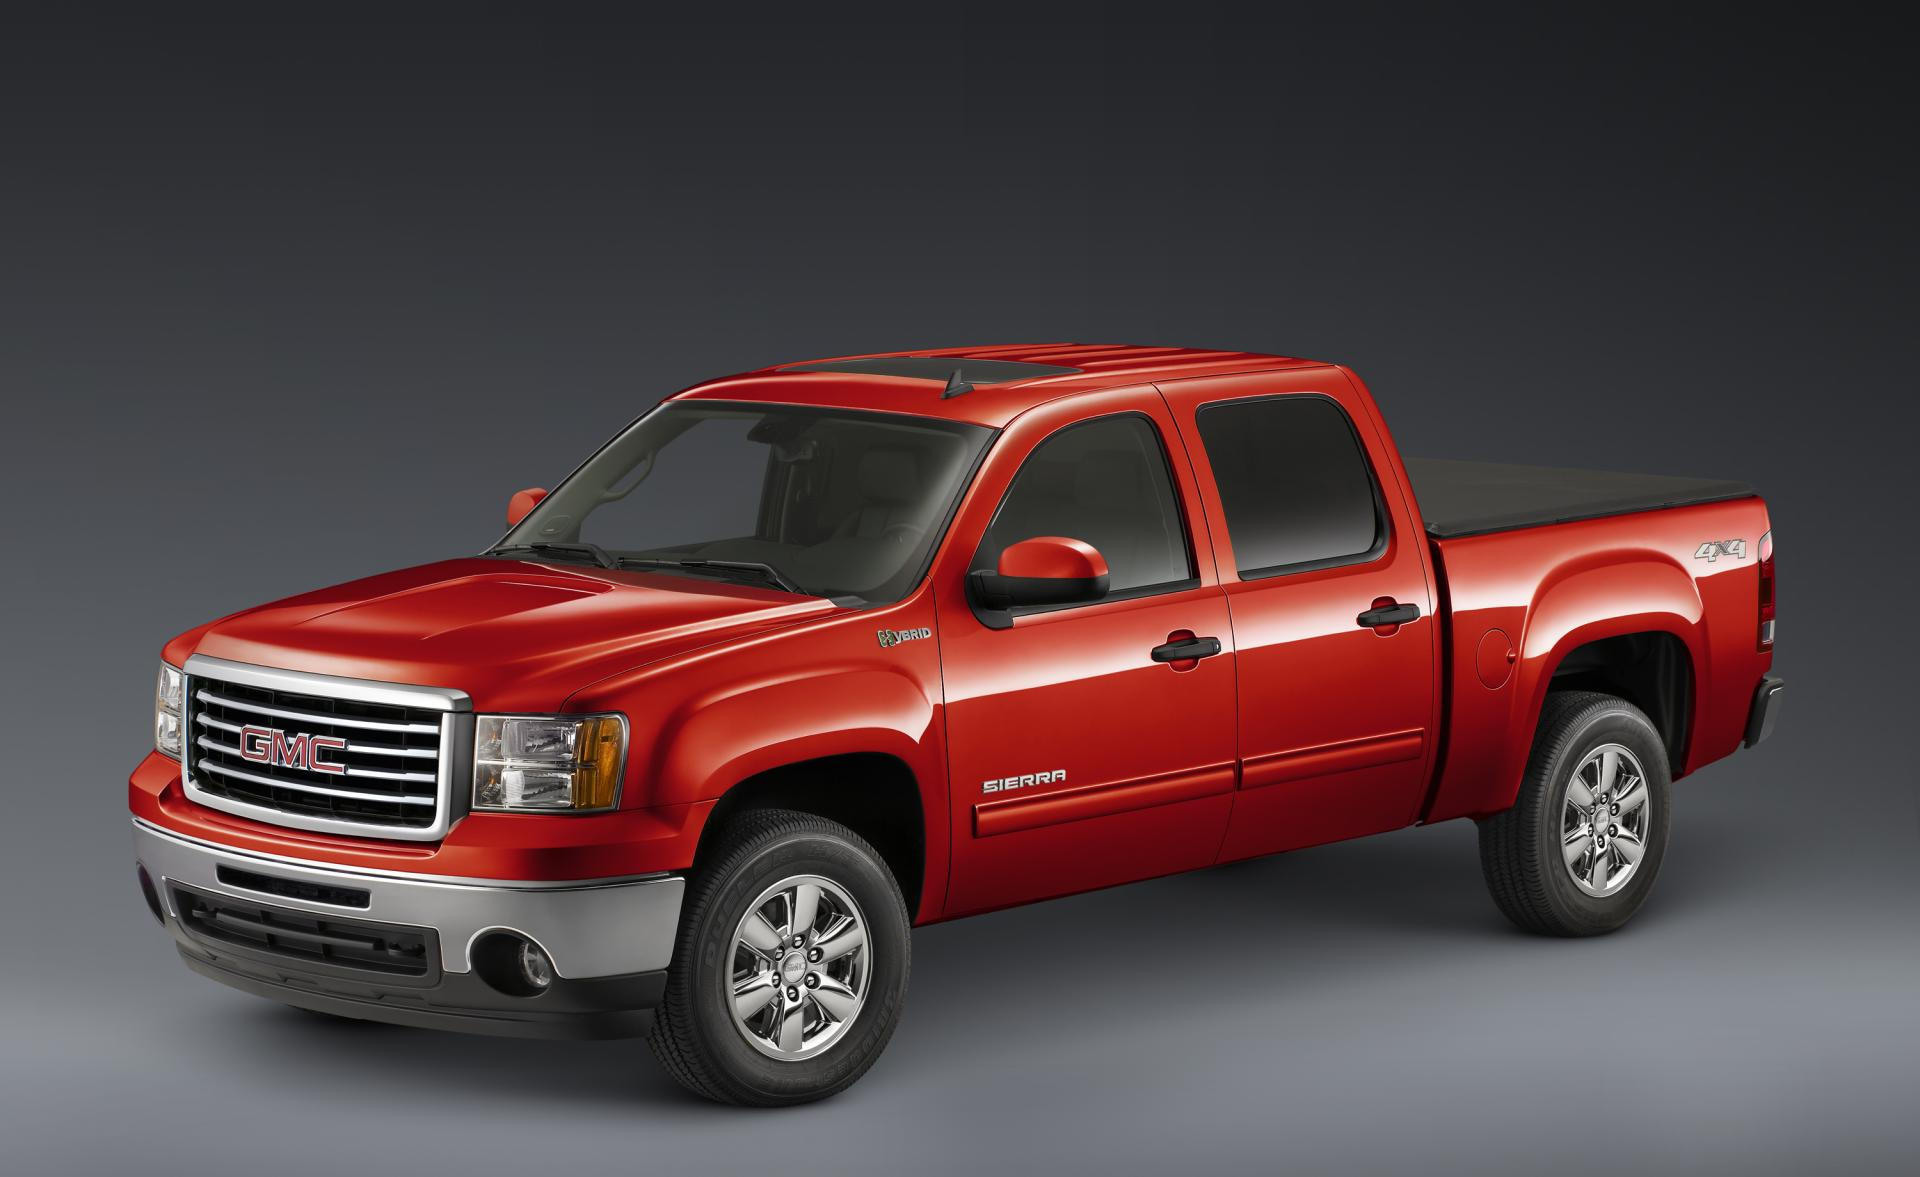 2012 GMC Sierra Hybrid News and Information